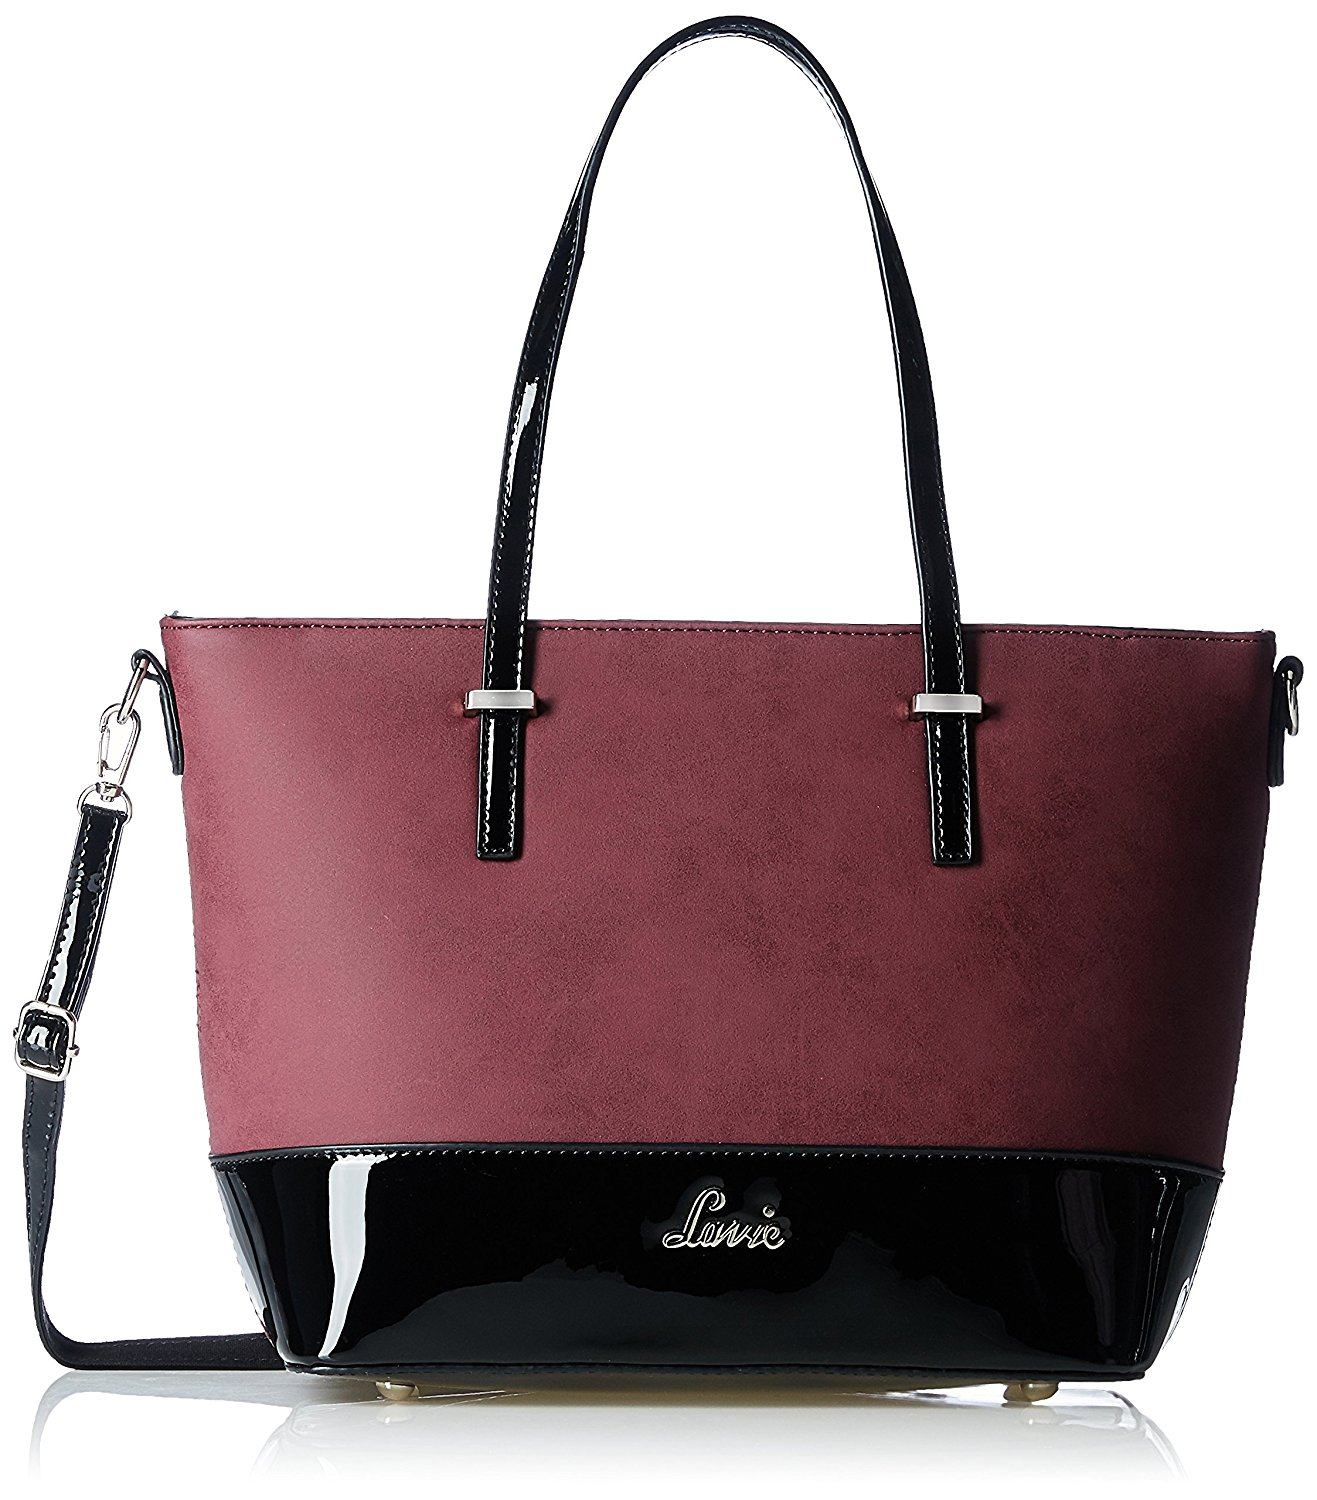 Top Handbag Brands In India